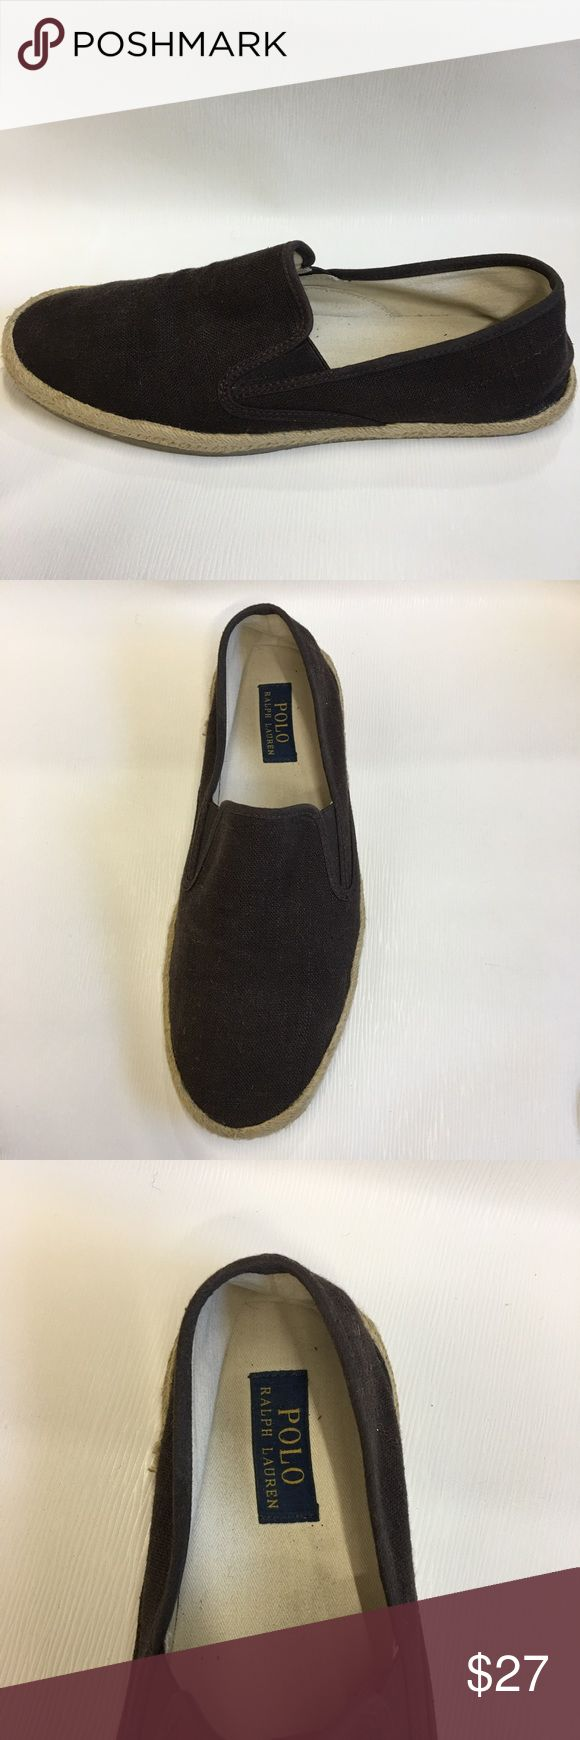 Polo Ralph Lauren brown spadrilles size 10D shoes are in excellent used condition. Polo by Ralph Lauren Shoes